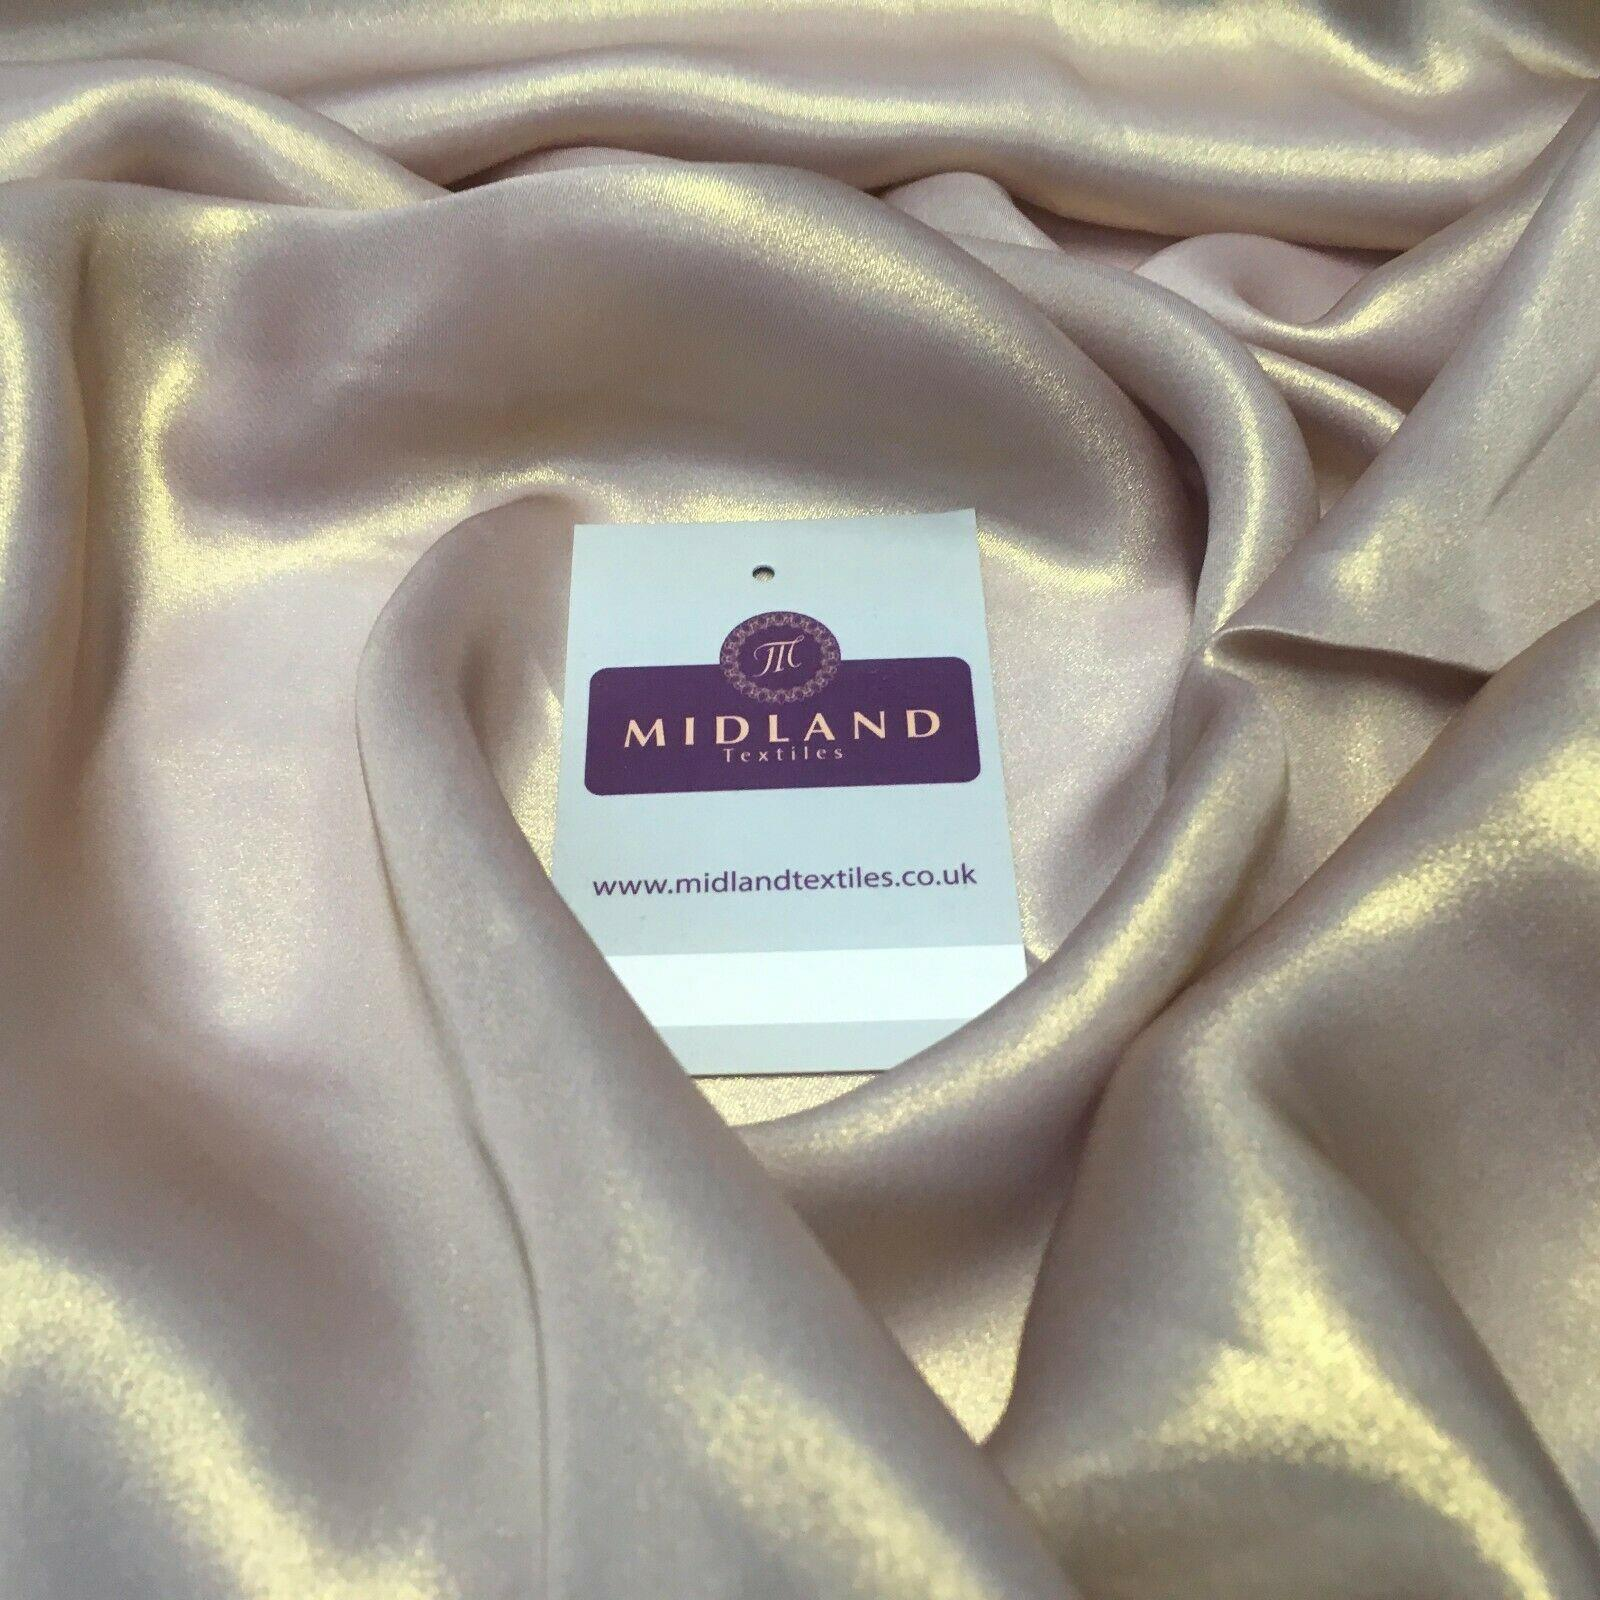 Gold Shimmer Foil Satin Georgette Chiffon Crepe Fabric 110cm  MR1178 Mtex